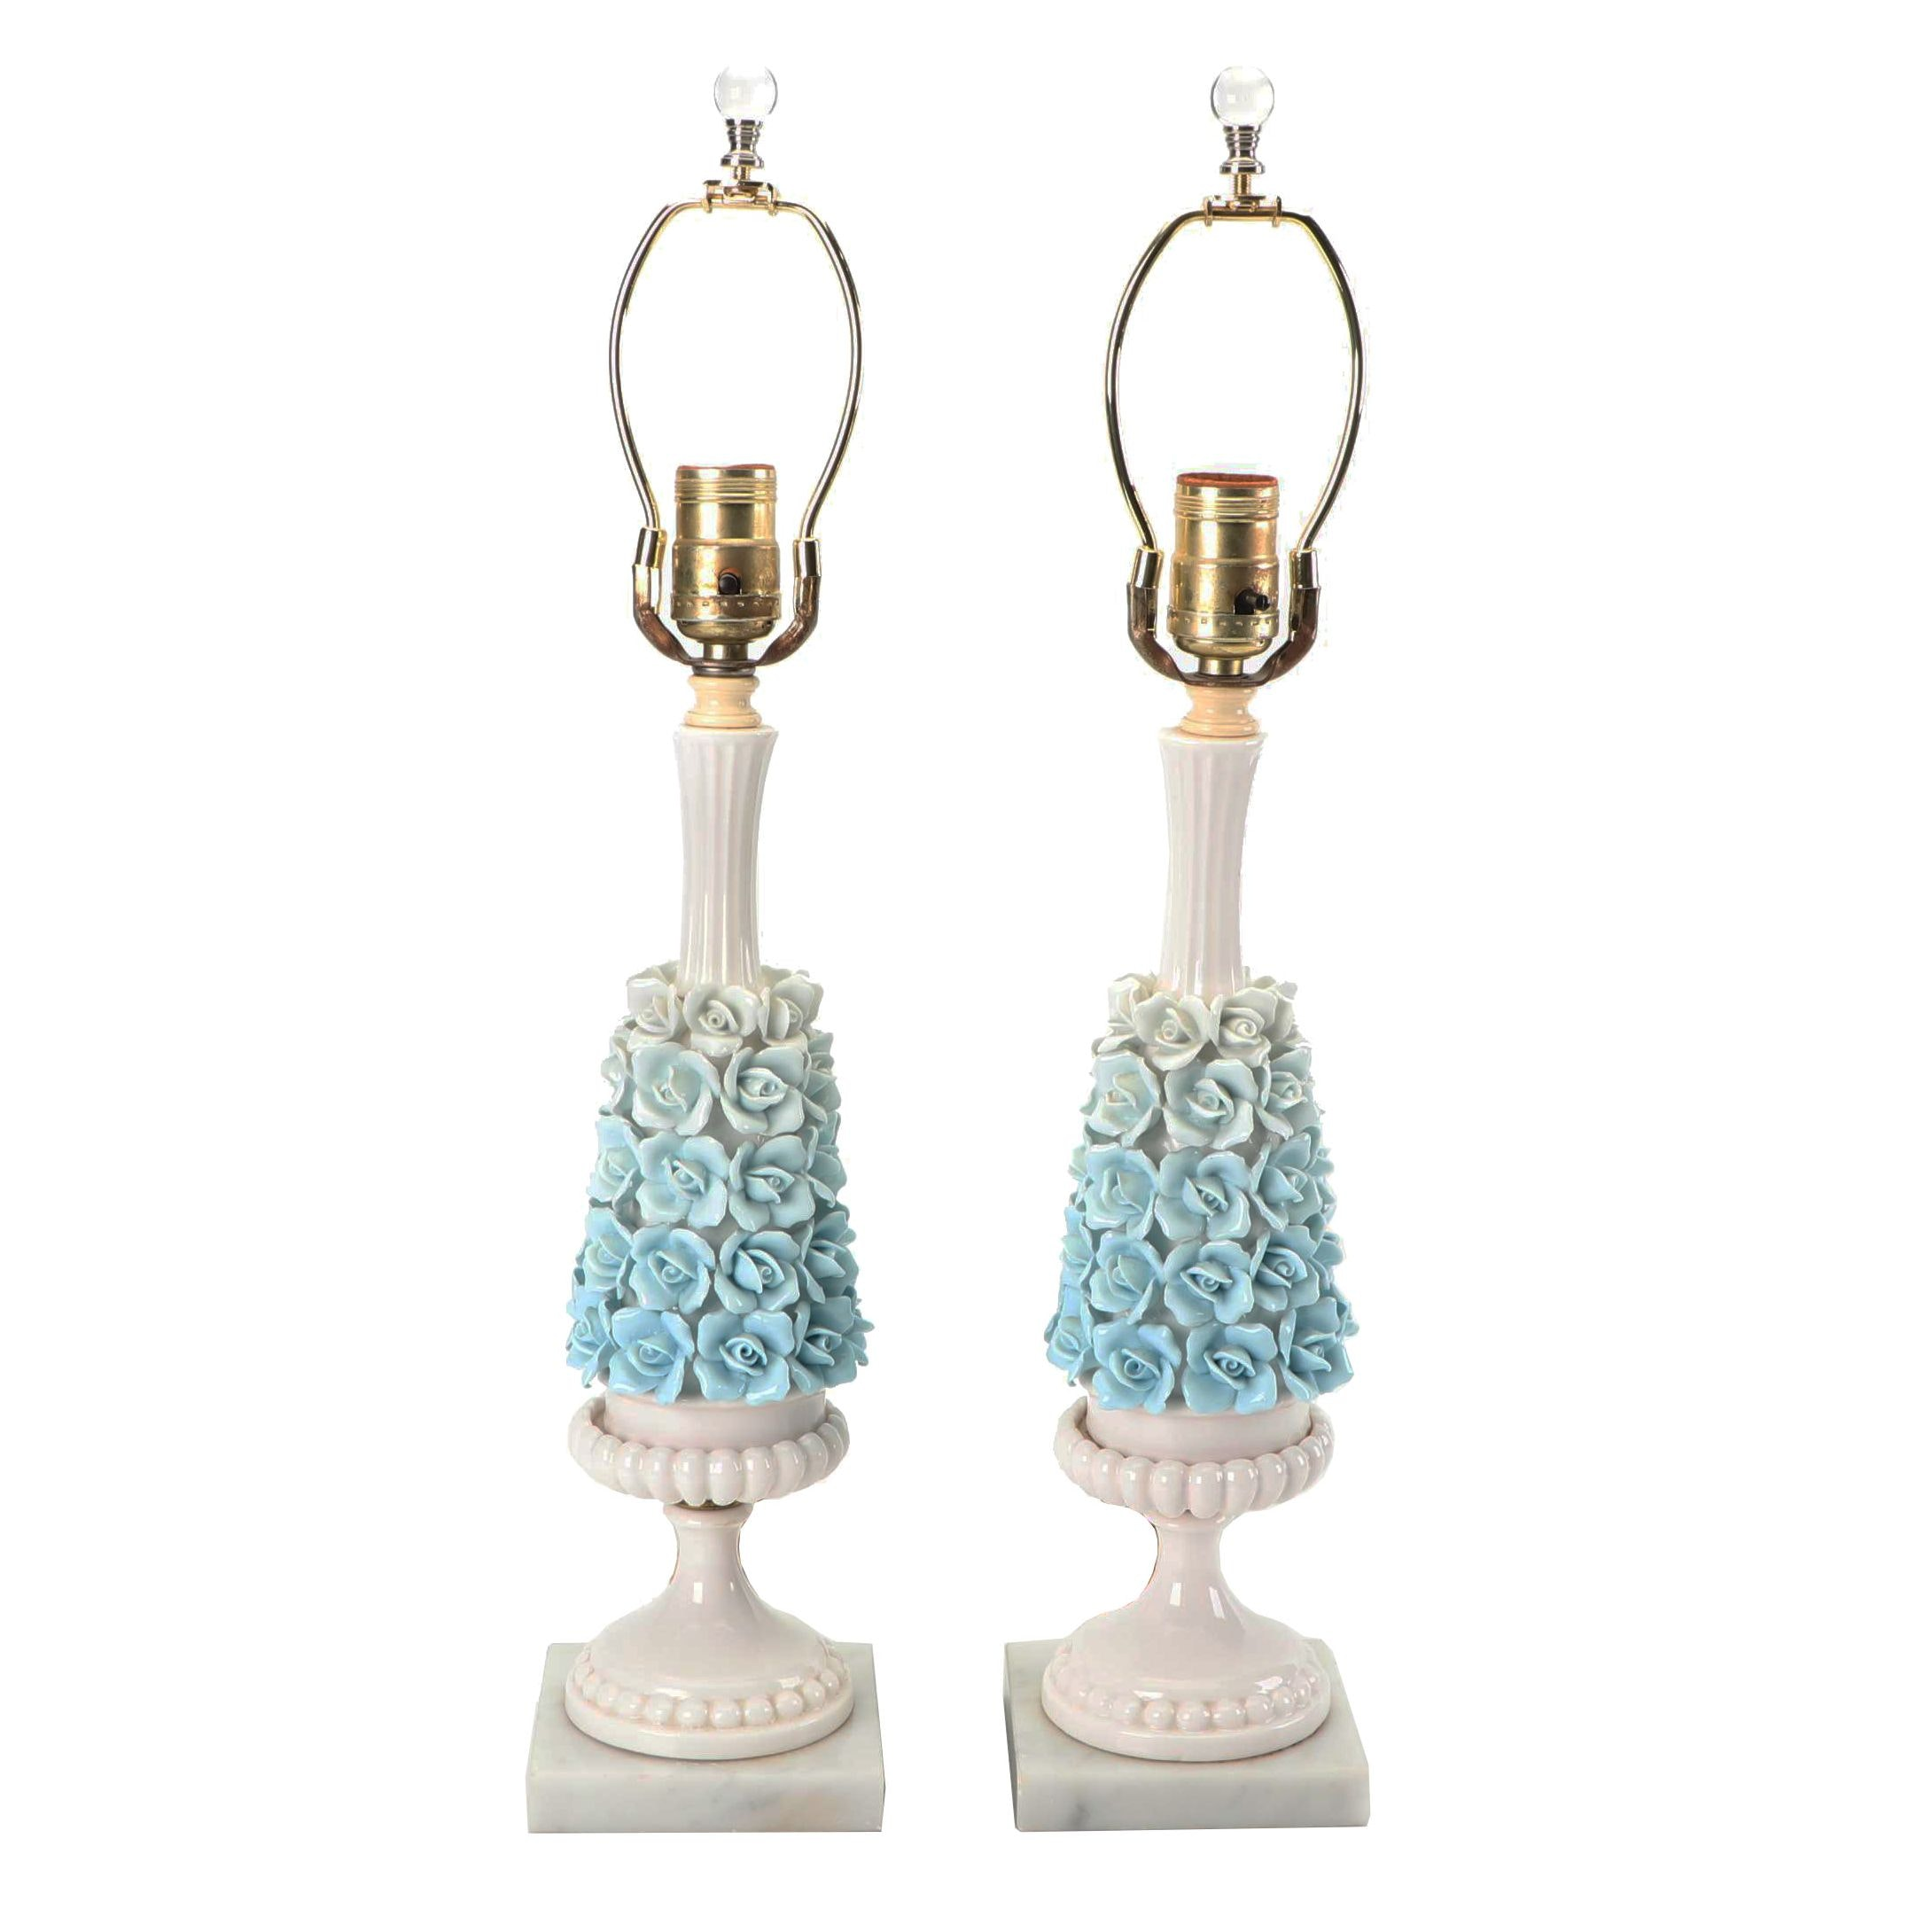 Vintage Capidomonte Style Rose Embellished Porcelain Lamps on Marble Bases